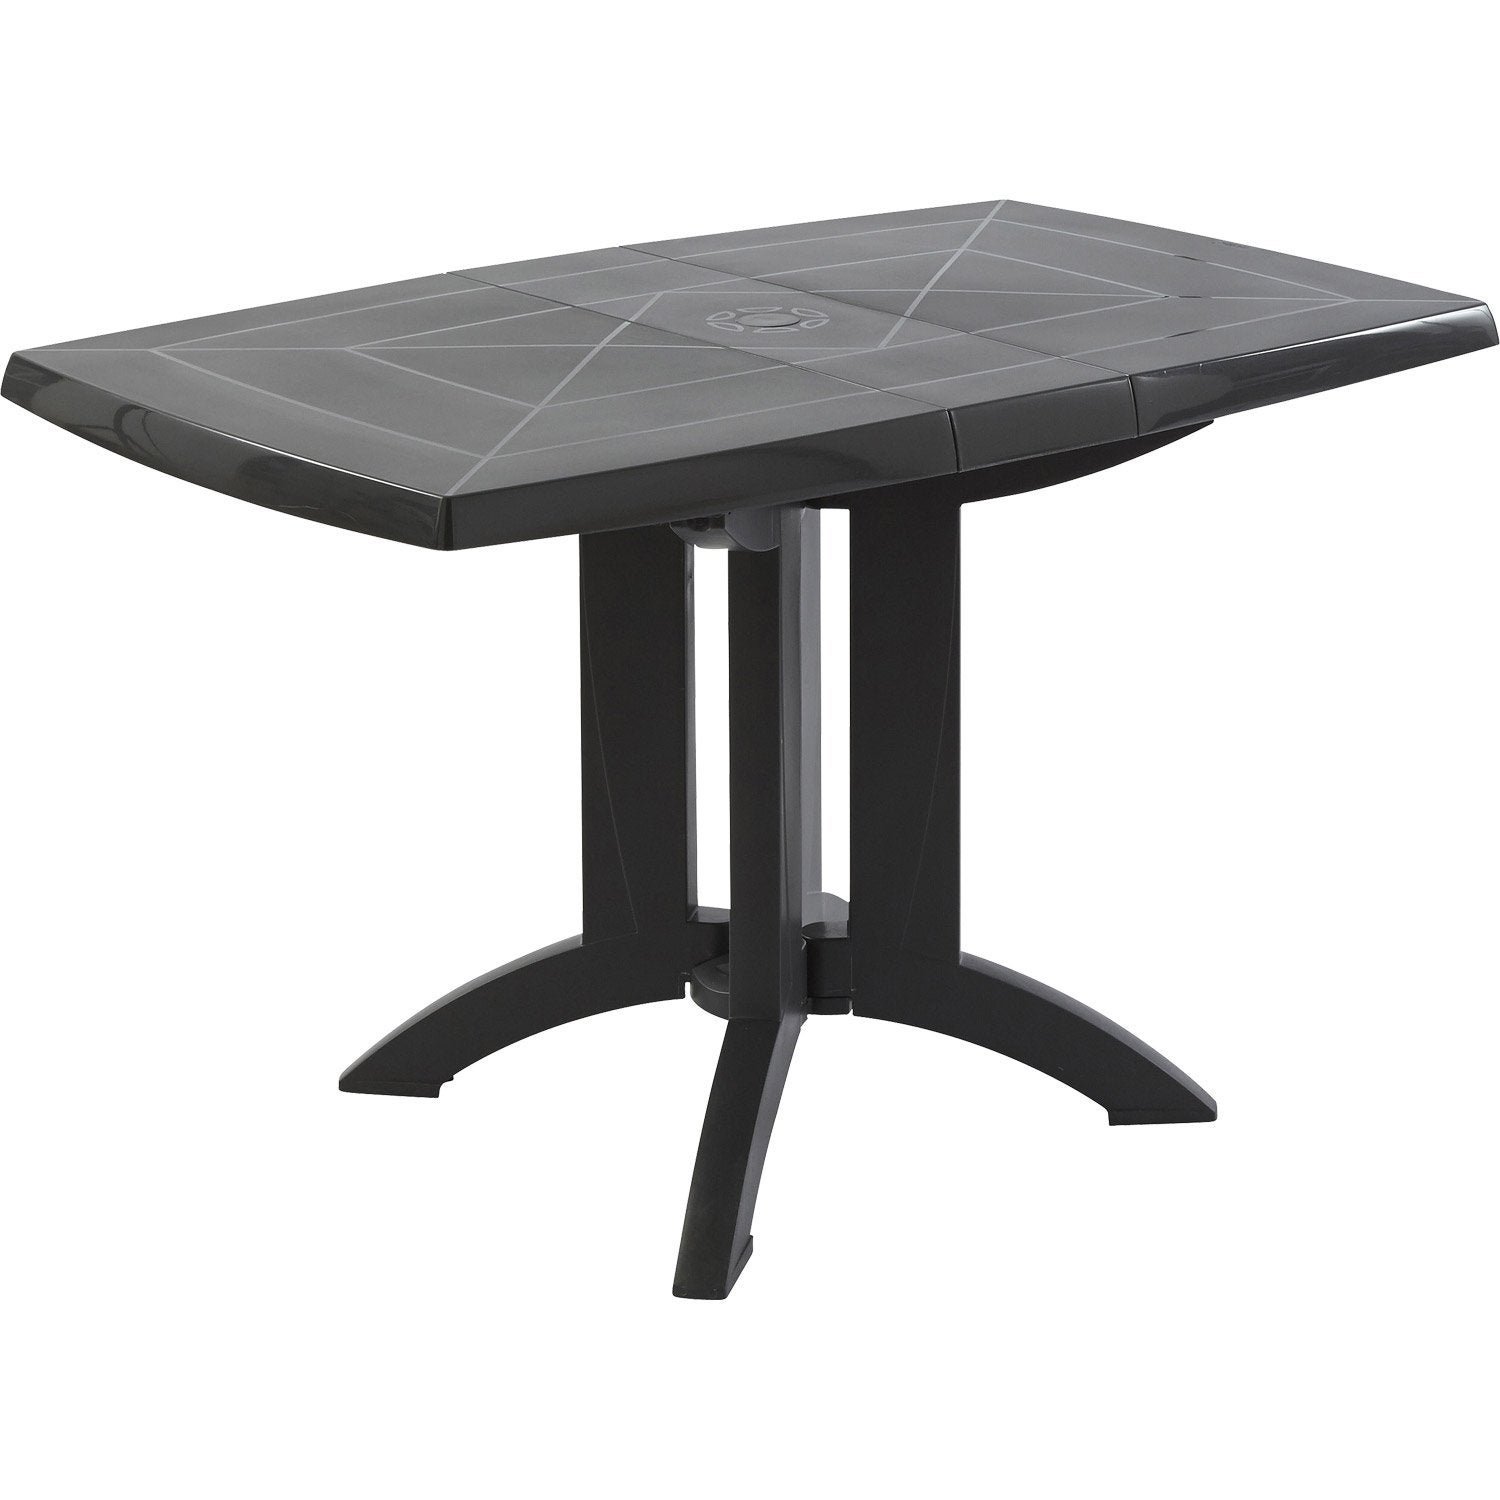 Table de jardin grosfillex v ga rectangulaire anthracite 4 for Table exterieur 12 personnes